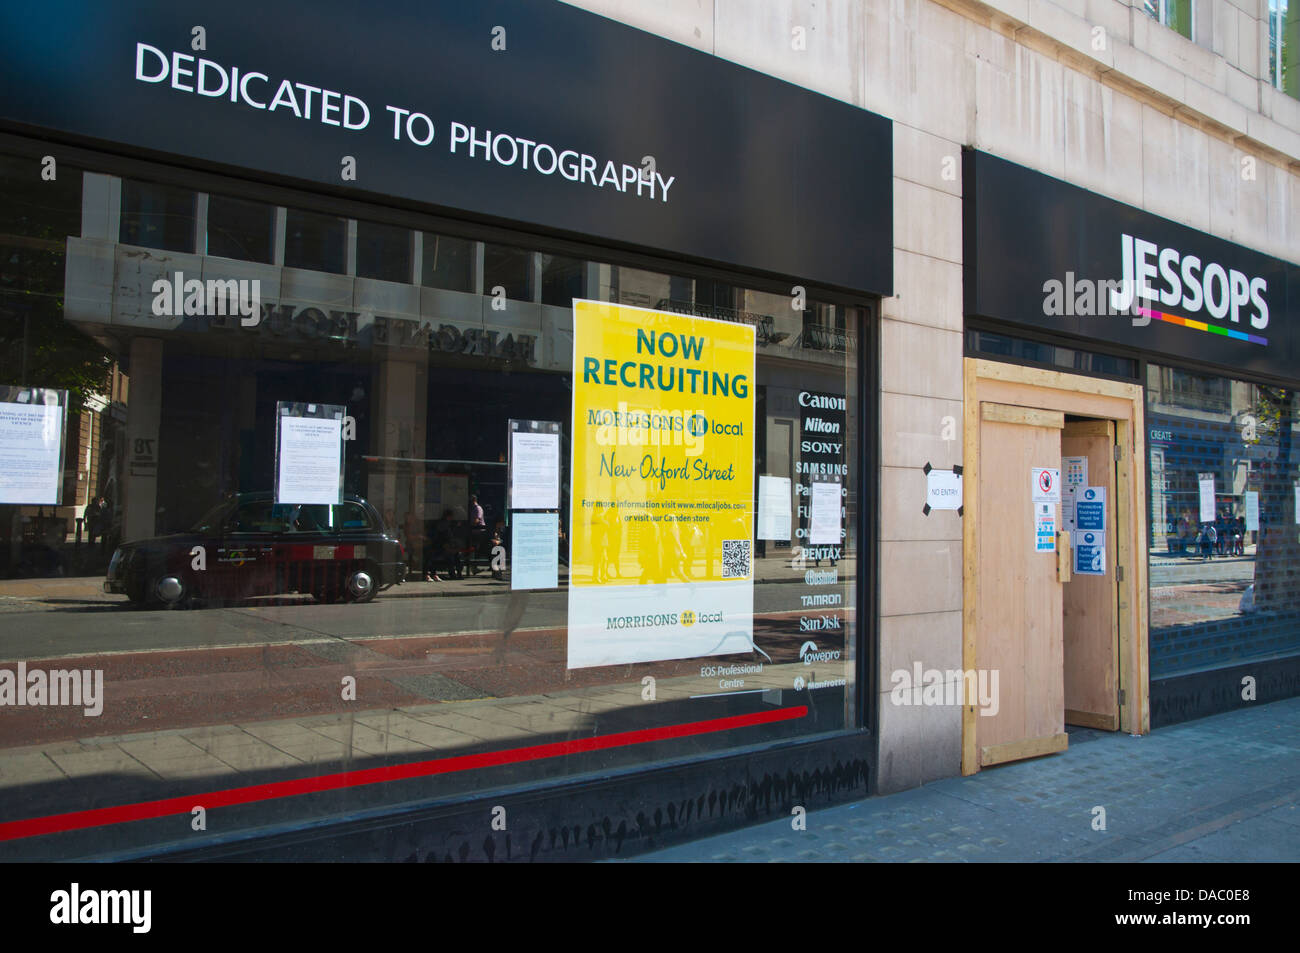 Bankrupt Jessops shop going to be replaced by Morrisons supermarket New Oxford street central London England Britain - Stock Image